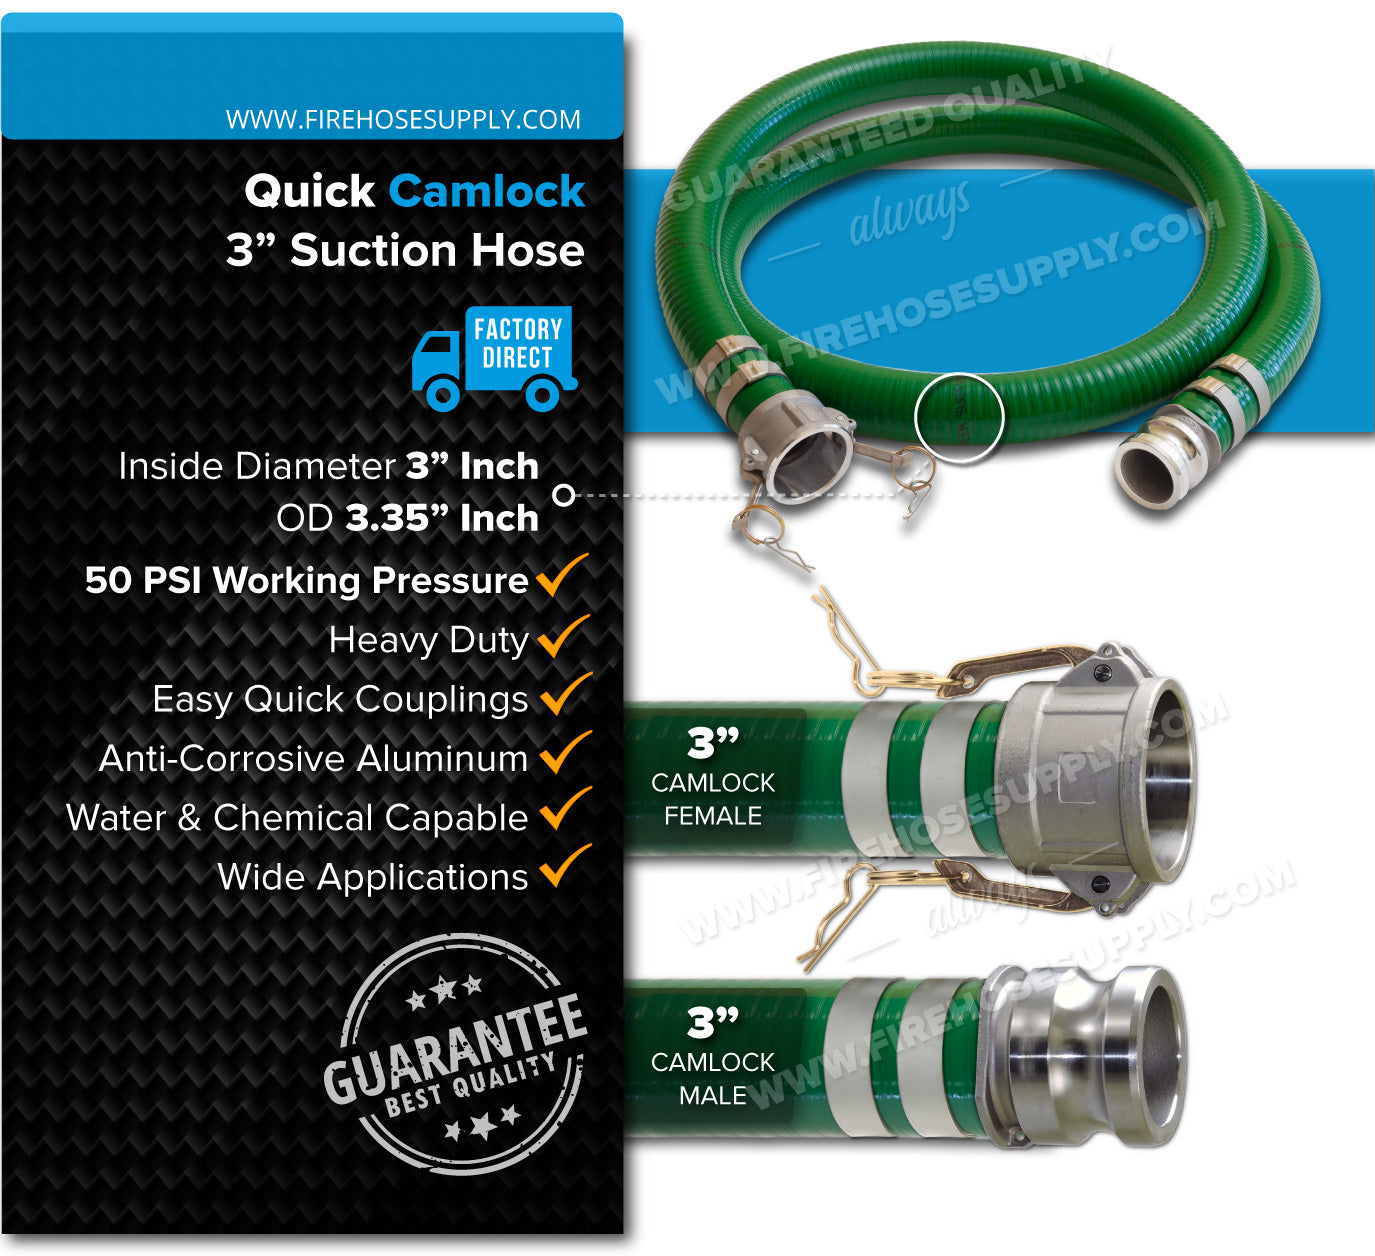 3 Inch Camlock Female x Male Green Suction Hose Overview